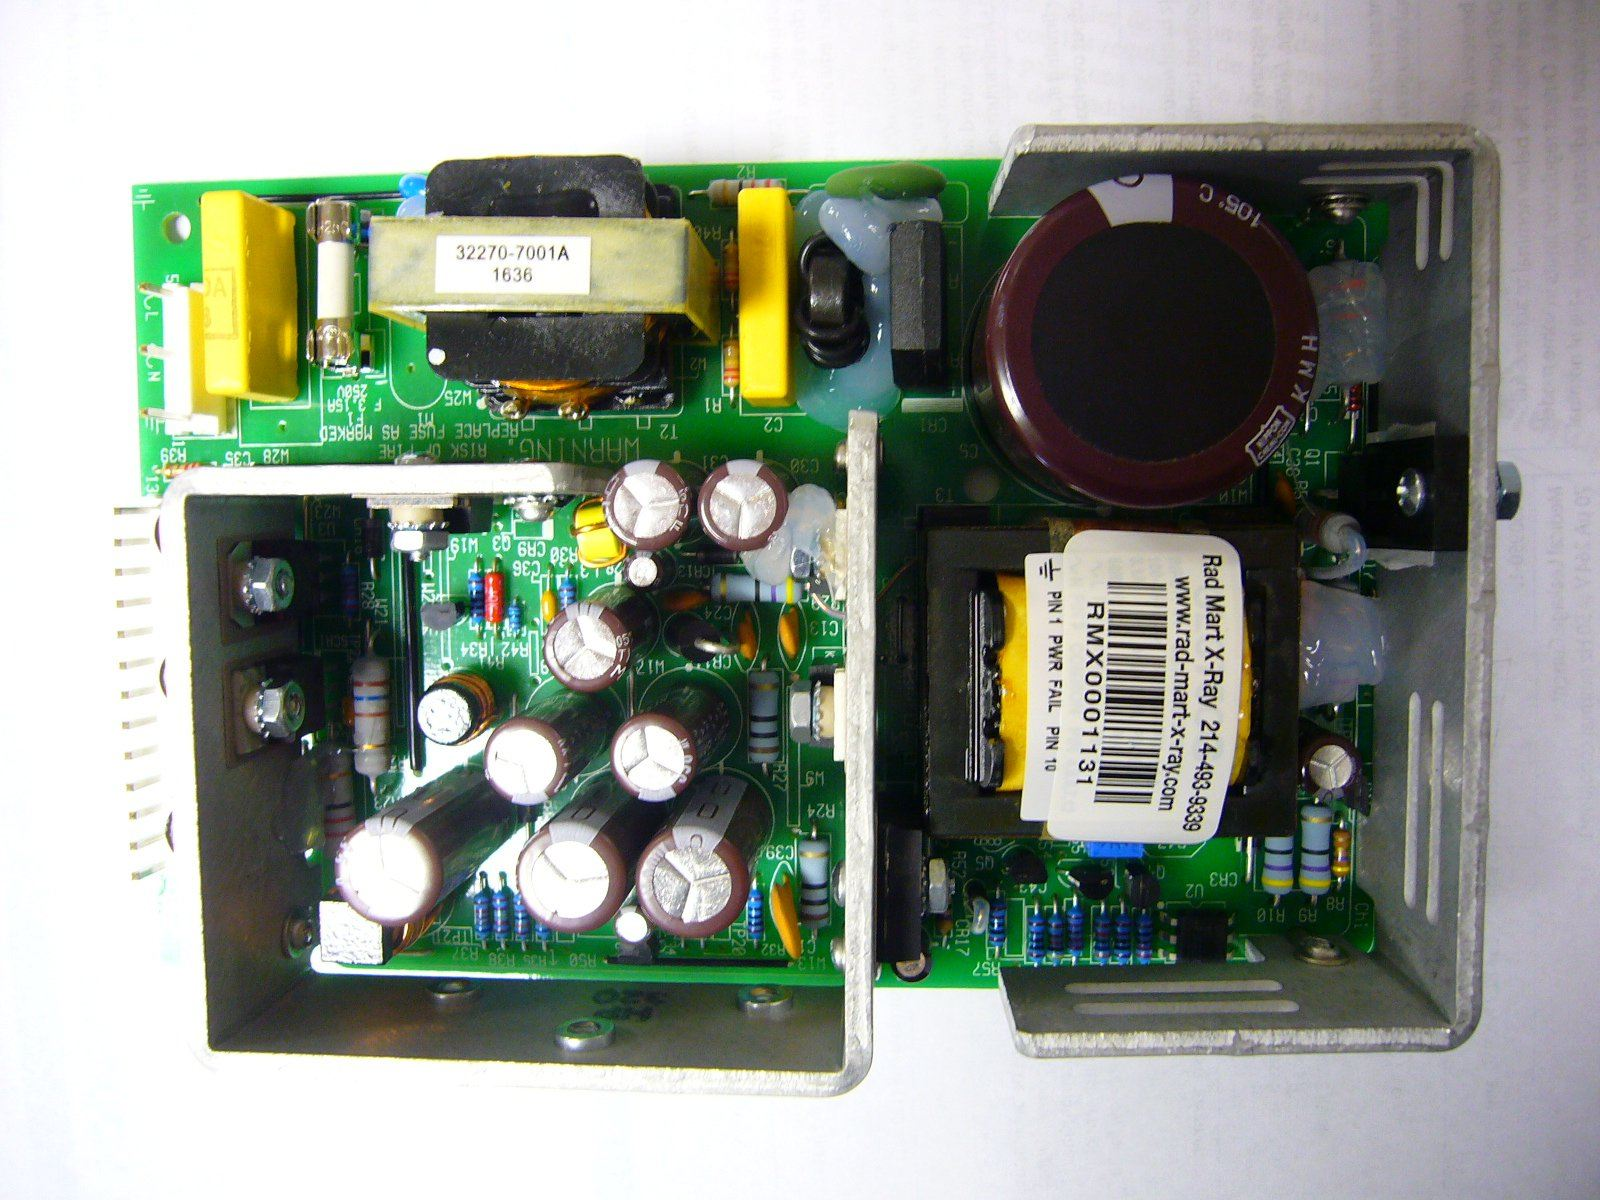 PCB Boards - OEC-9800/9900 GE PS1 POWER SUPPLY (00-901393-01) (5365841)